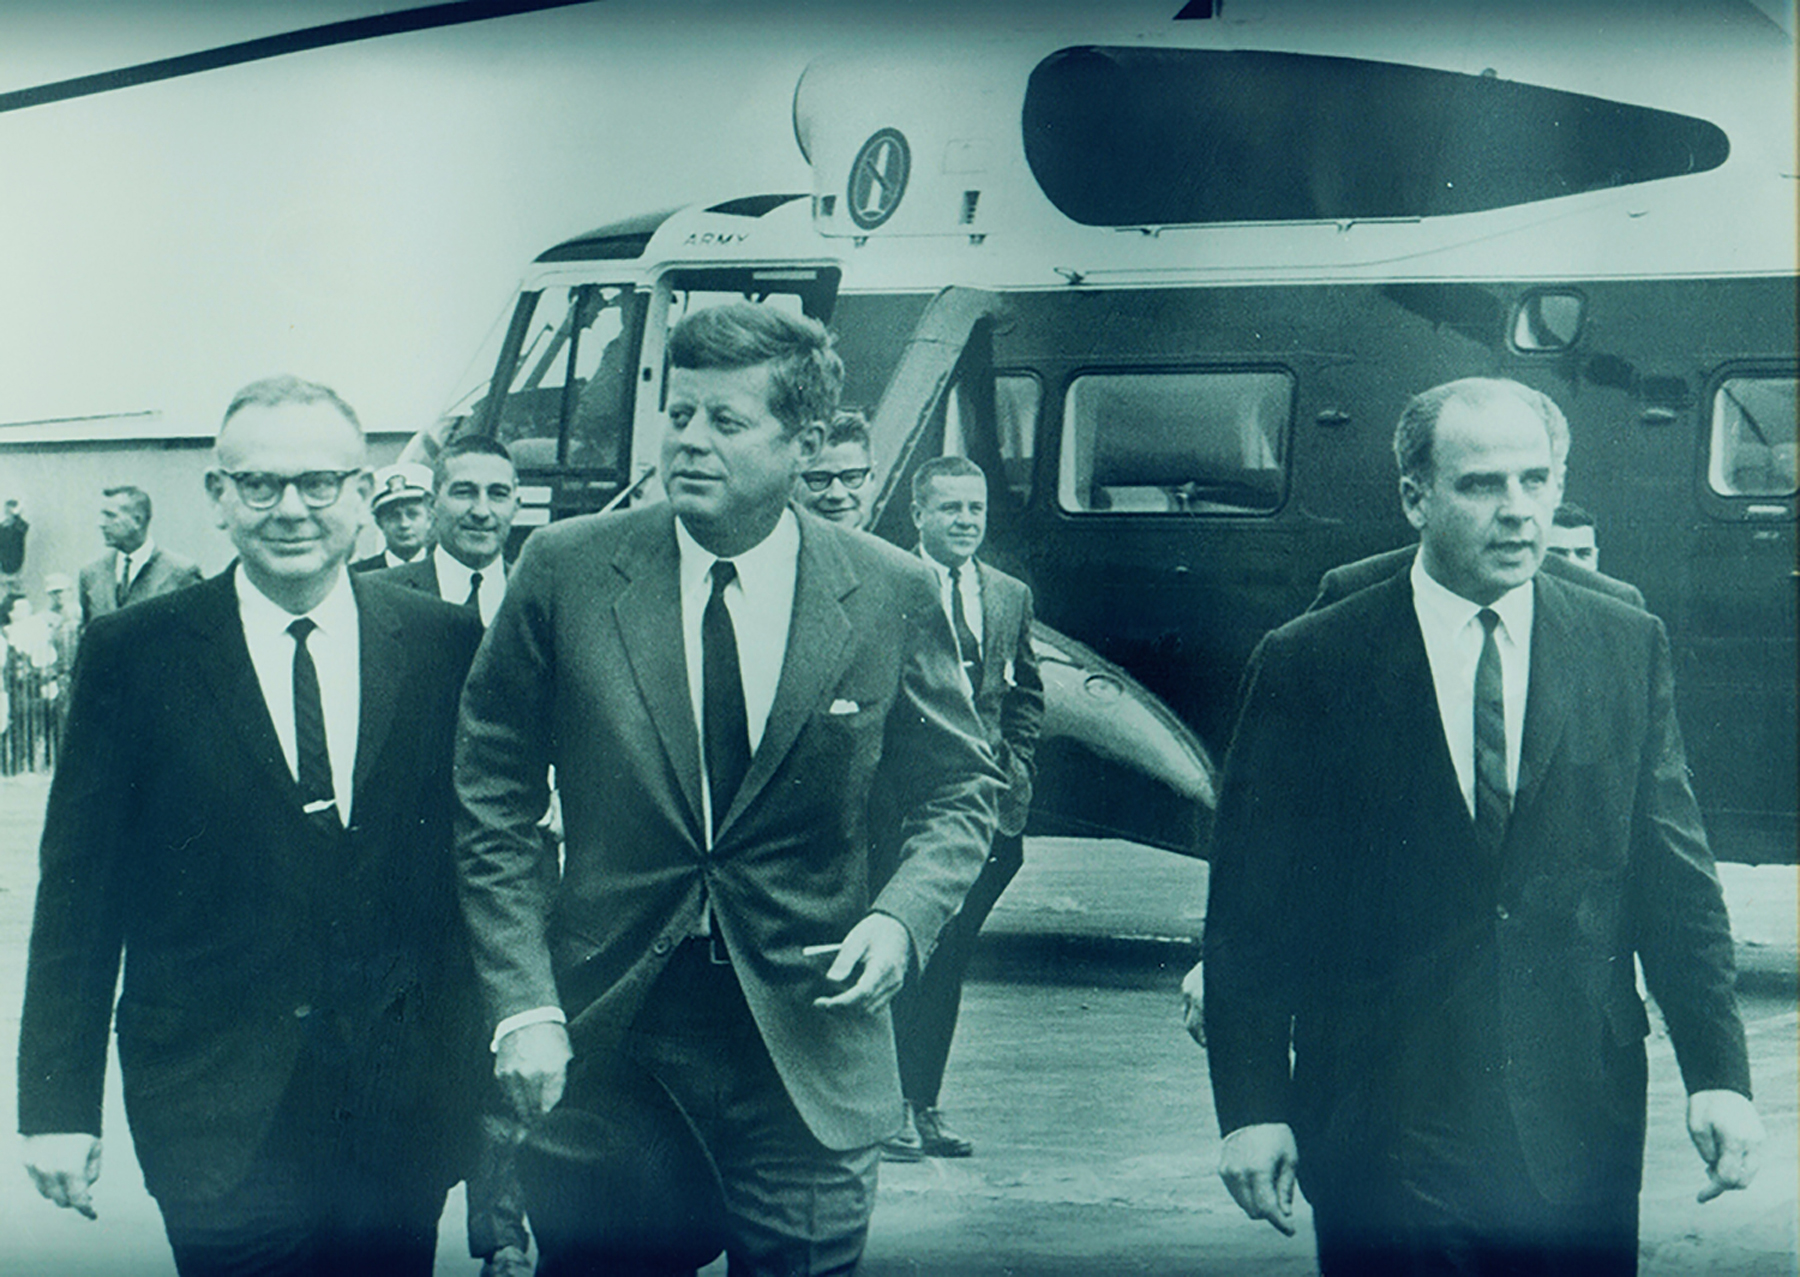 President Kennedy and Gaylord Nelson (right side of photo) at the Ashland, Wisconsin airport in 1963